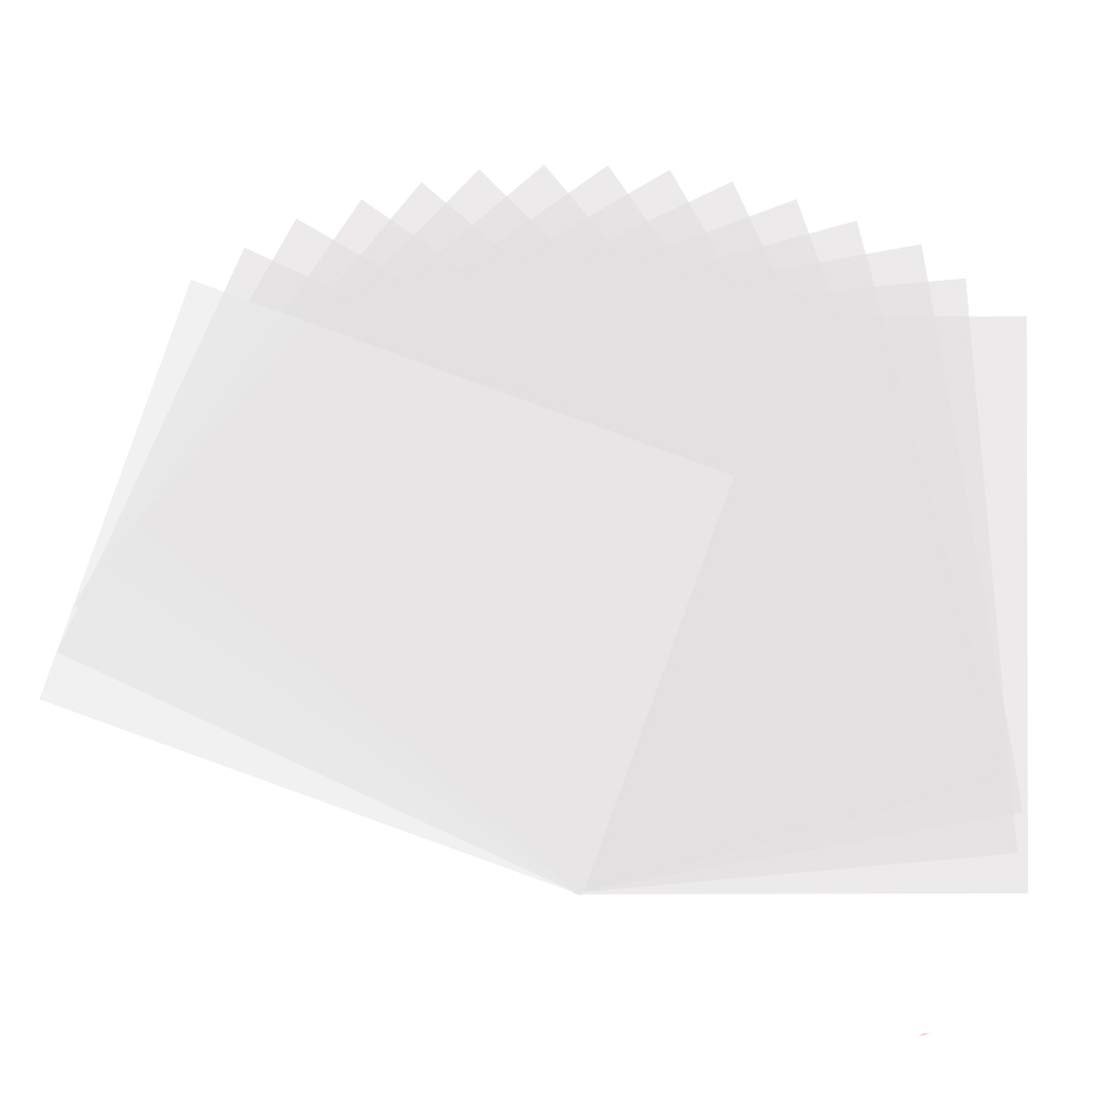 10 Pack 6 mil Blank Stencil Making Sheets 12 x 12 inch Compatible Cricut & Silhouette Machine (Mylar Material) KOMIWOO 10 Blank Stencil